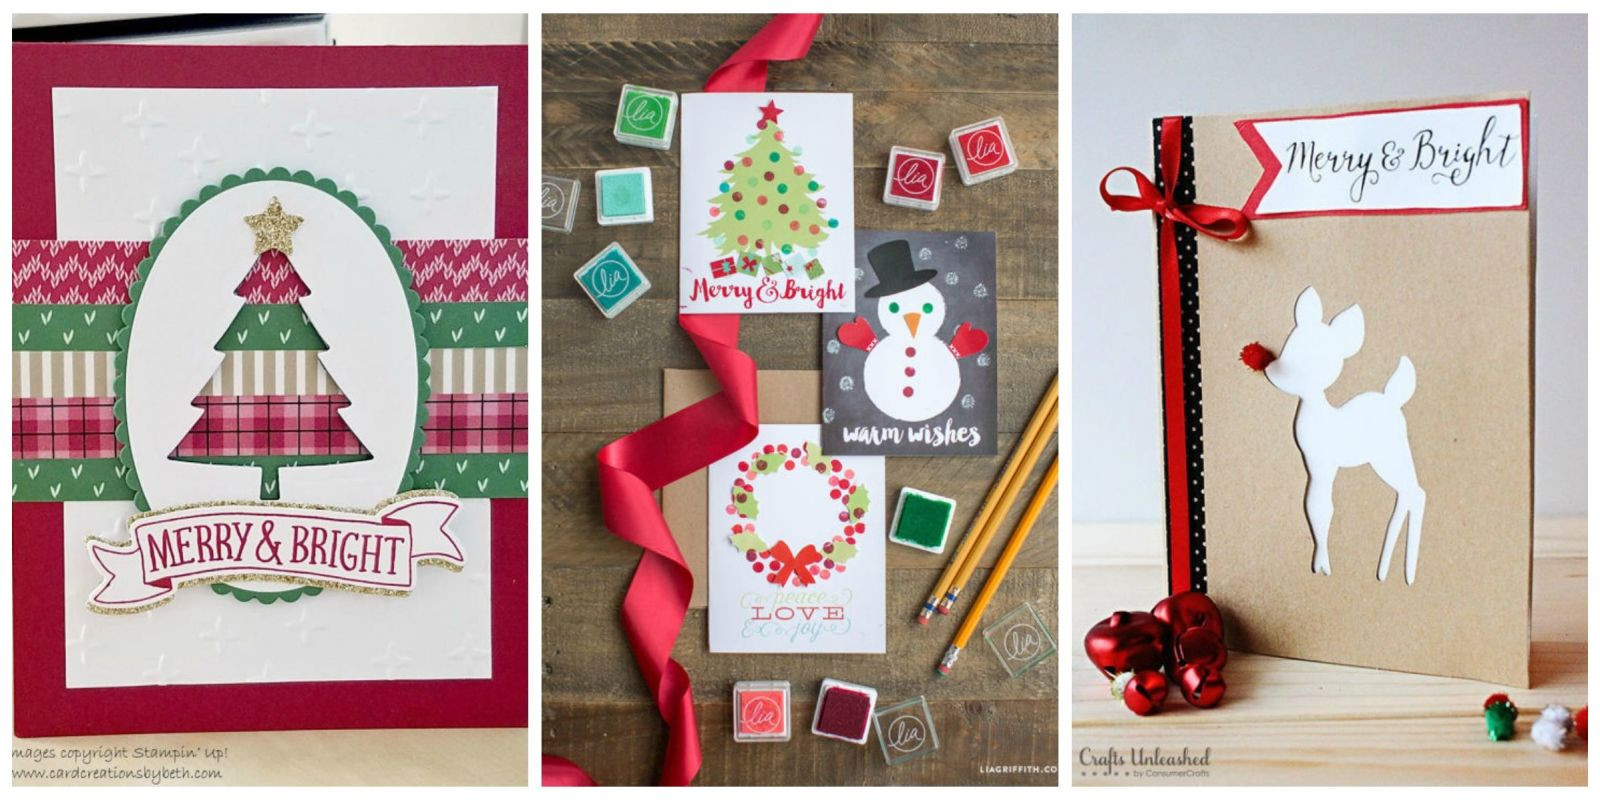 Best ideas about DIY Photo Christmas Cards . Save or Pin 15 DIY Christmas Card Ideas Easy Homemade Christmas Now.